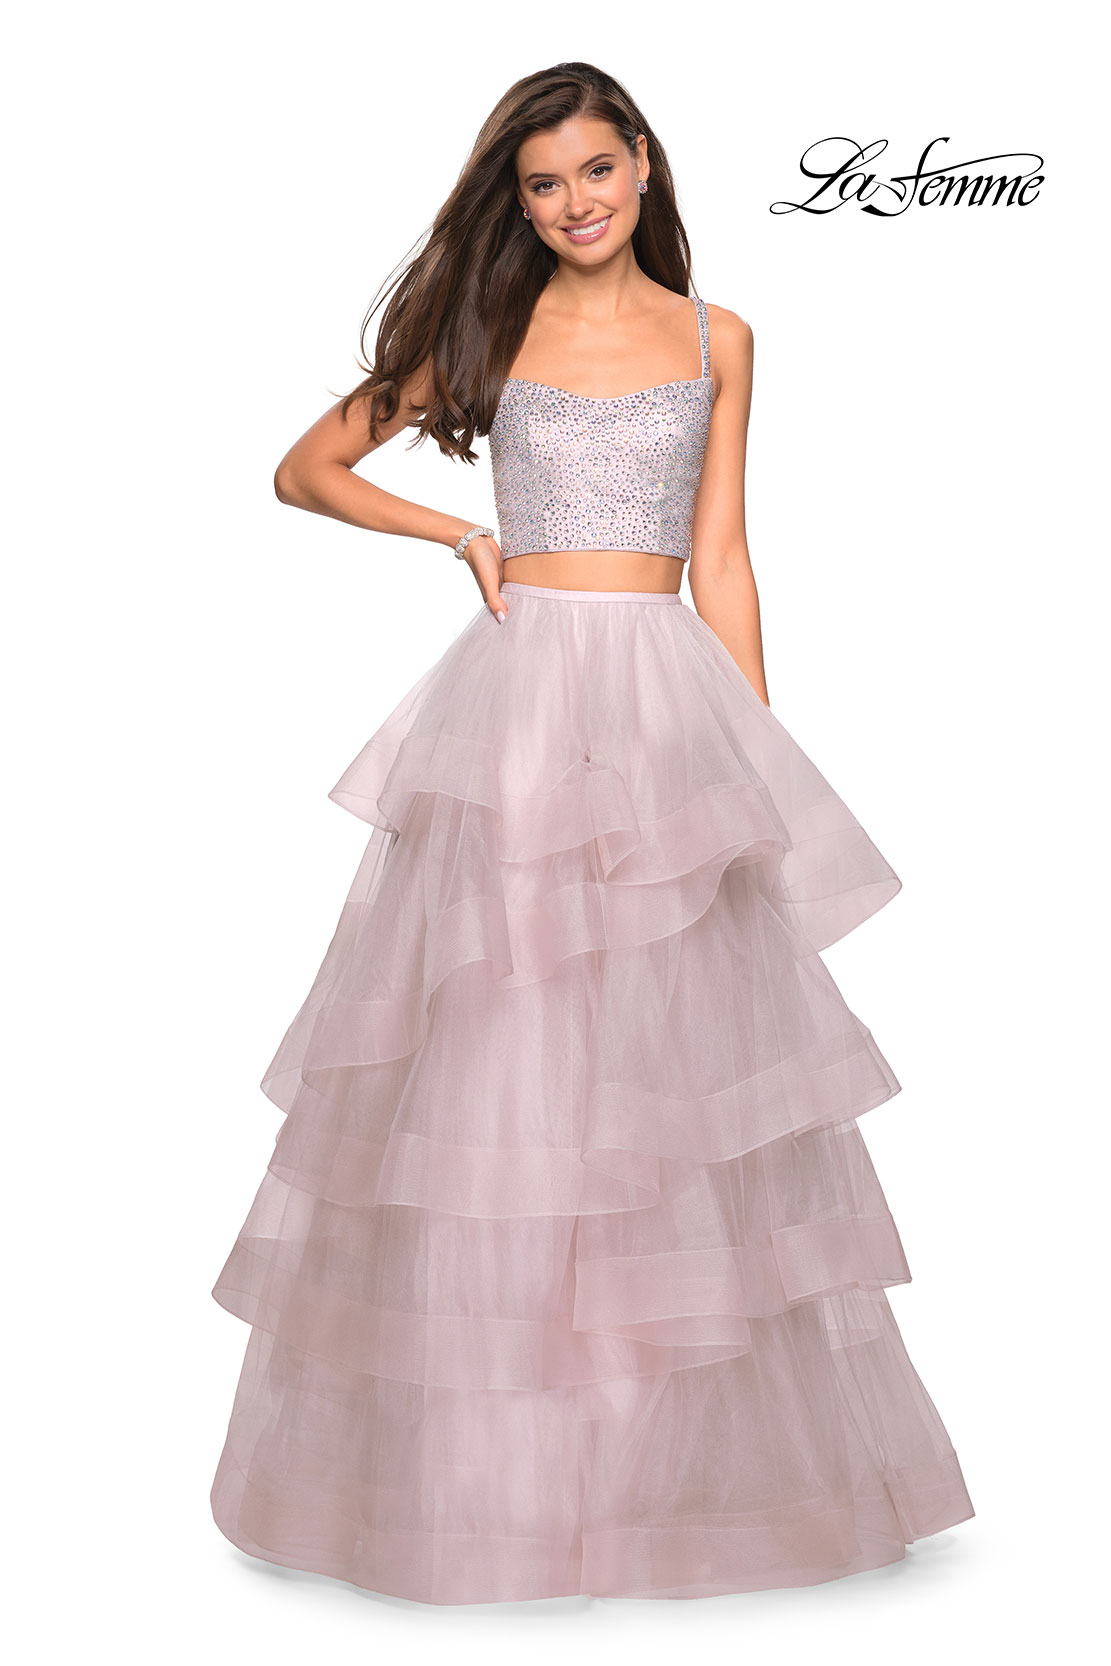 Tulle skirt mauve prom dress two piece with rhinestones